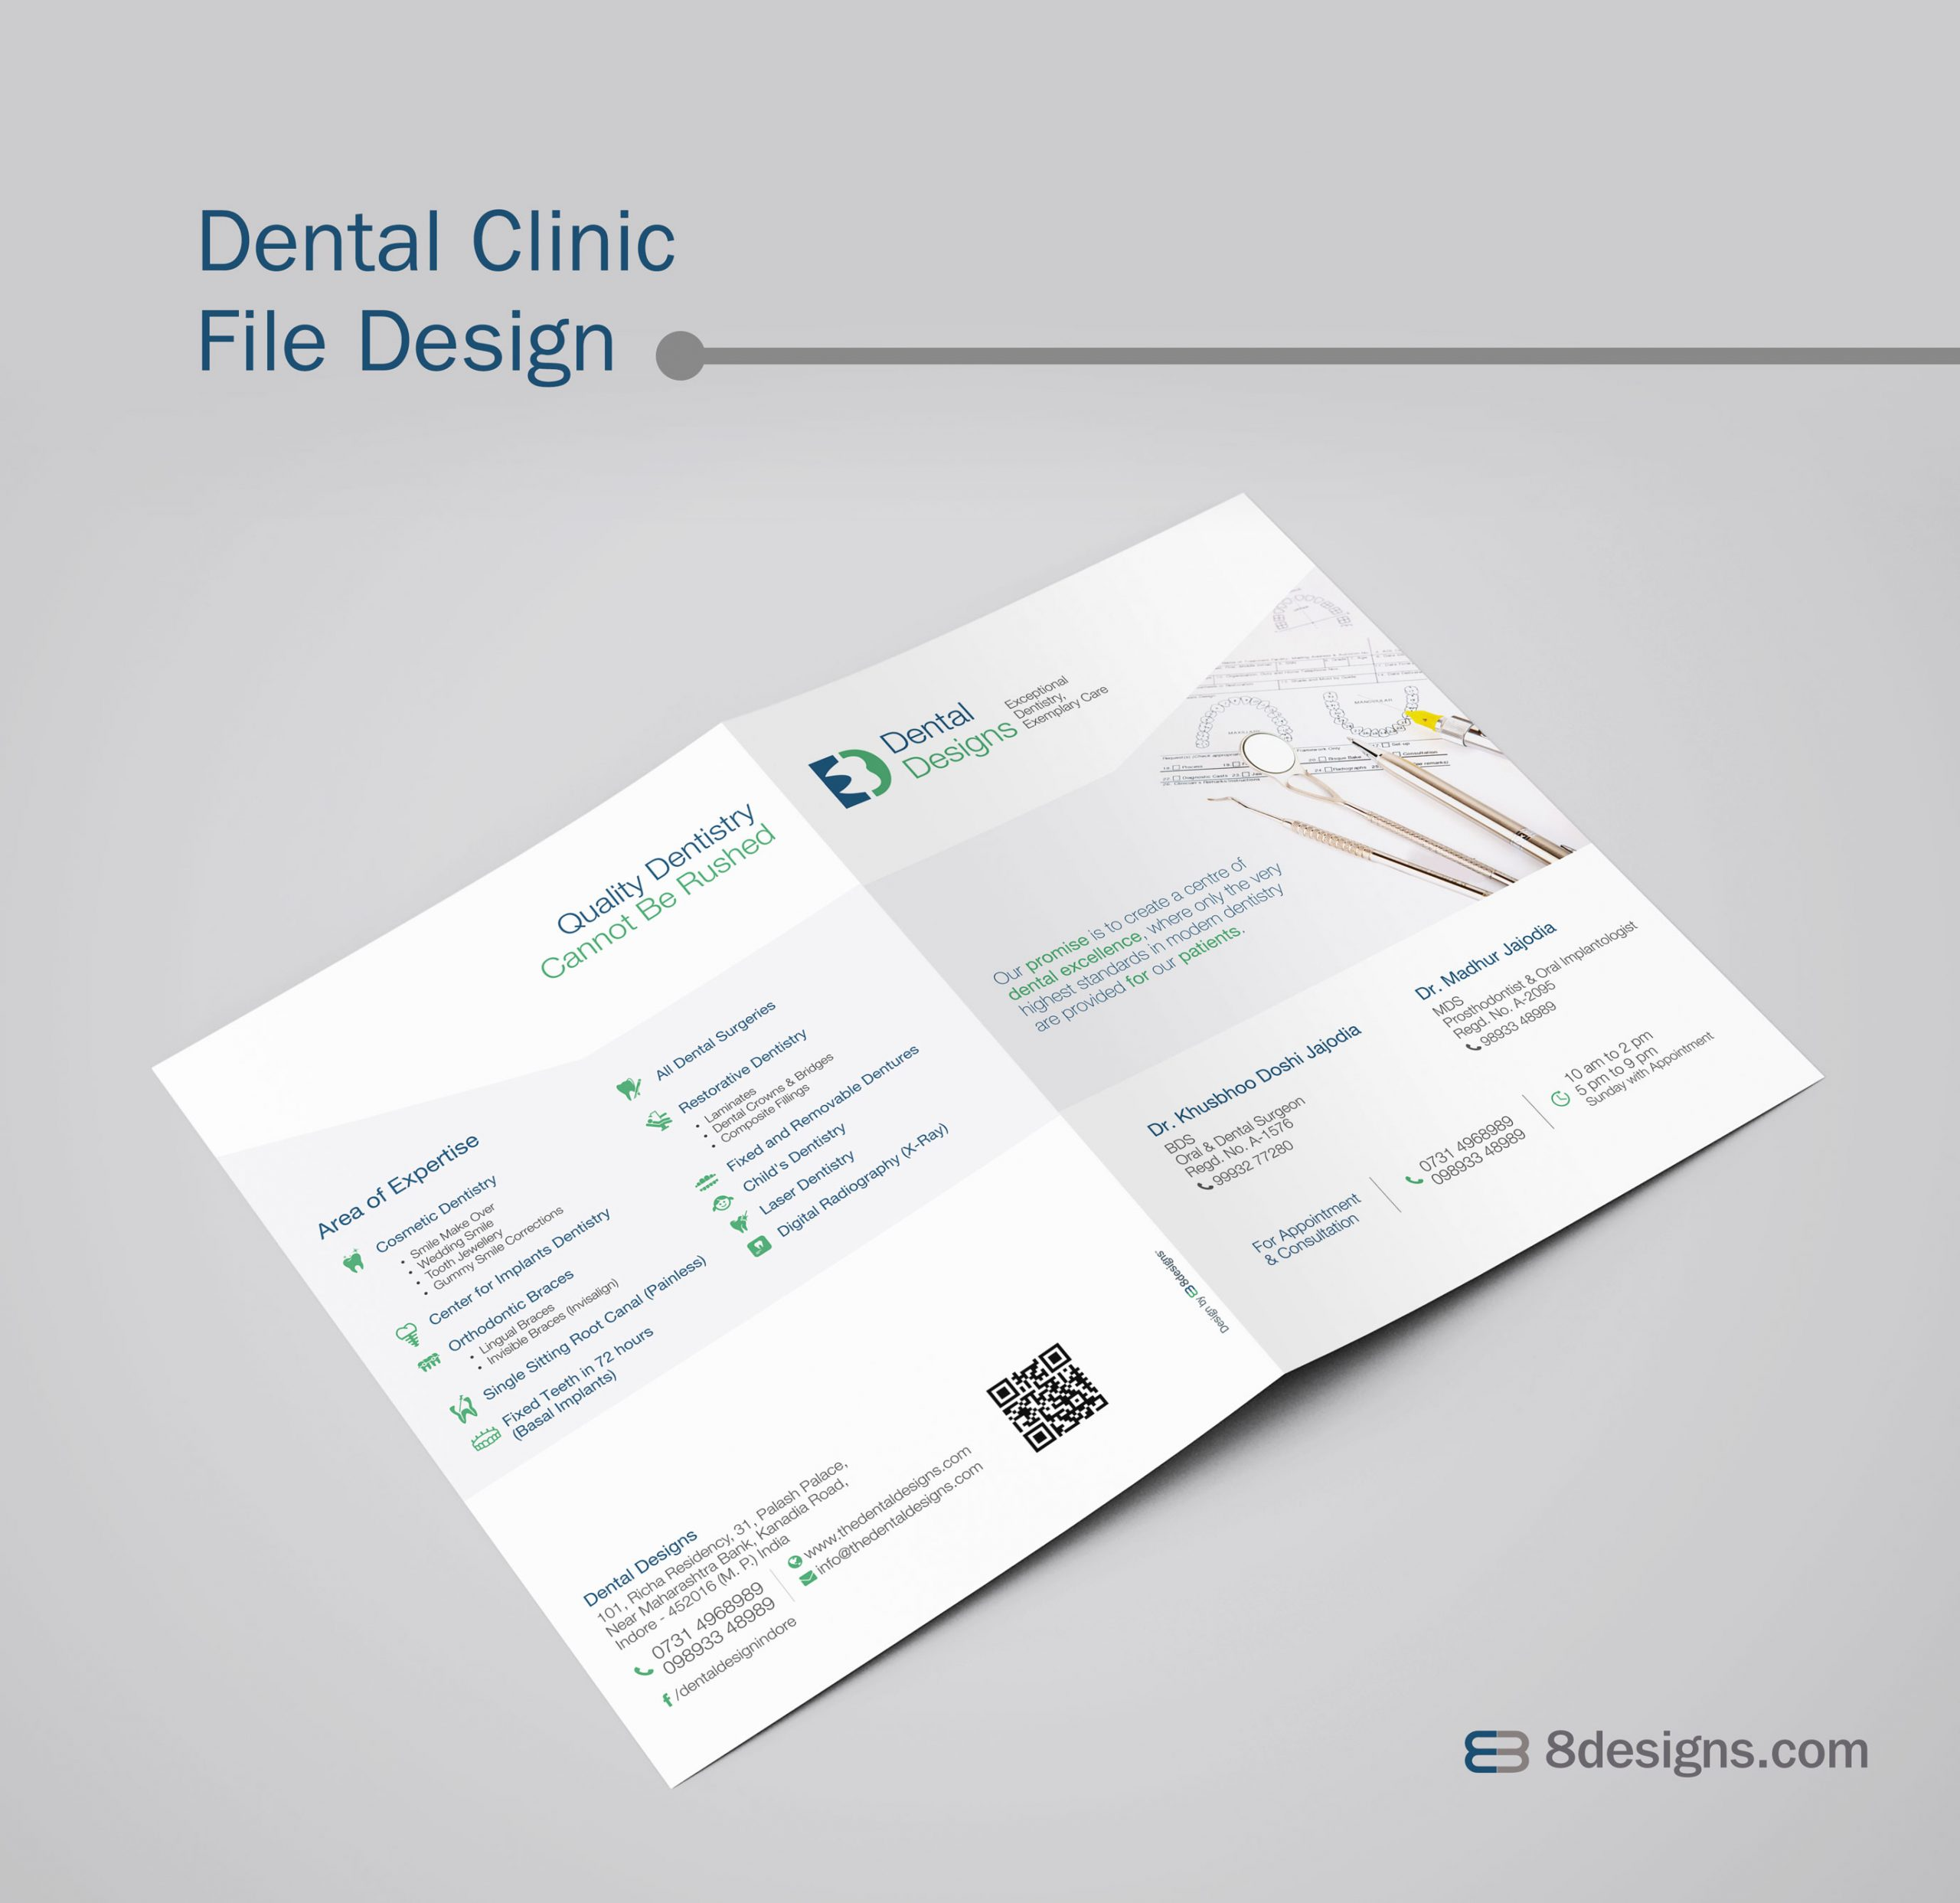 Clinic File Design, Dental Clinic File Design